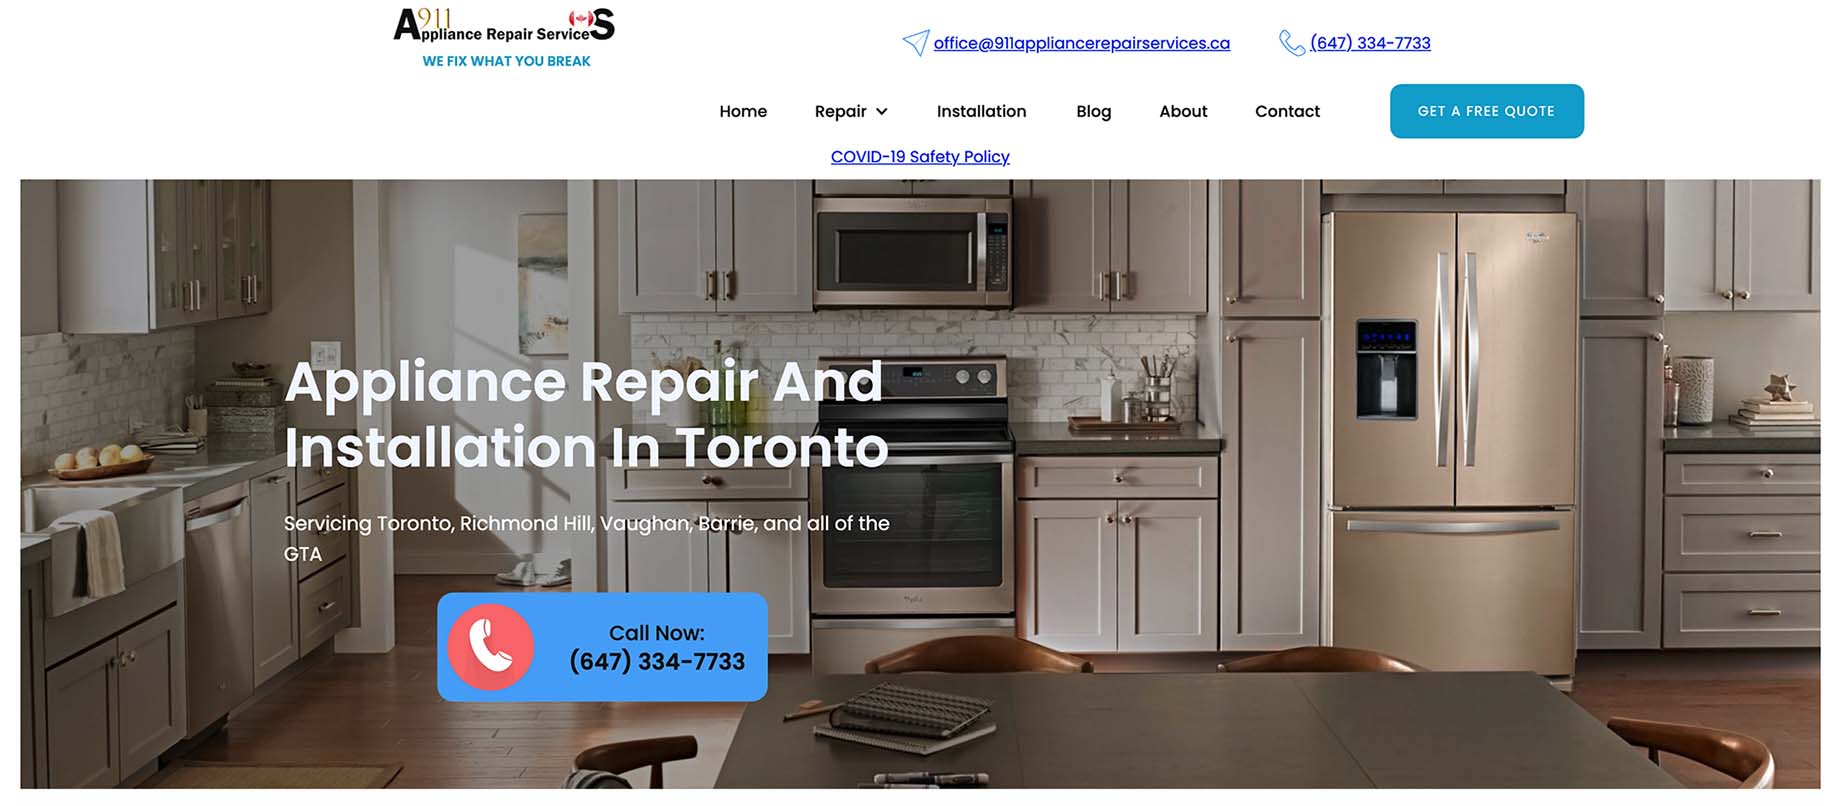 Picture of 911 Appliance Repair Services website.